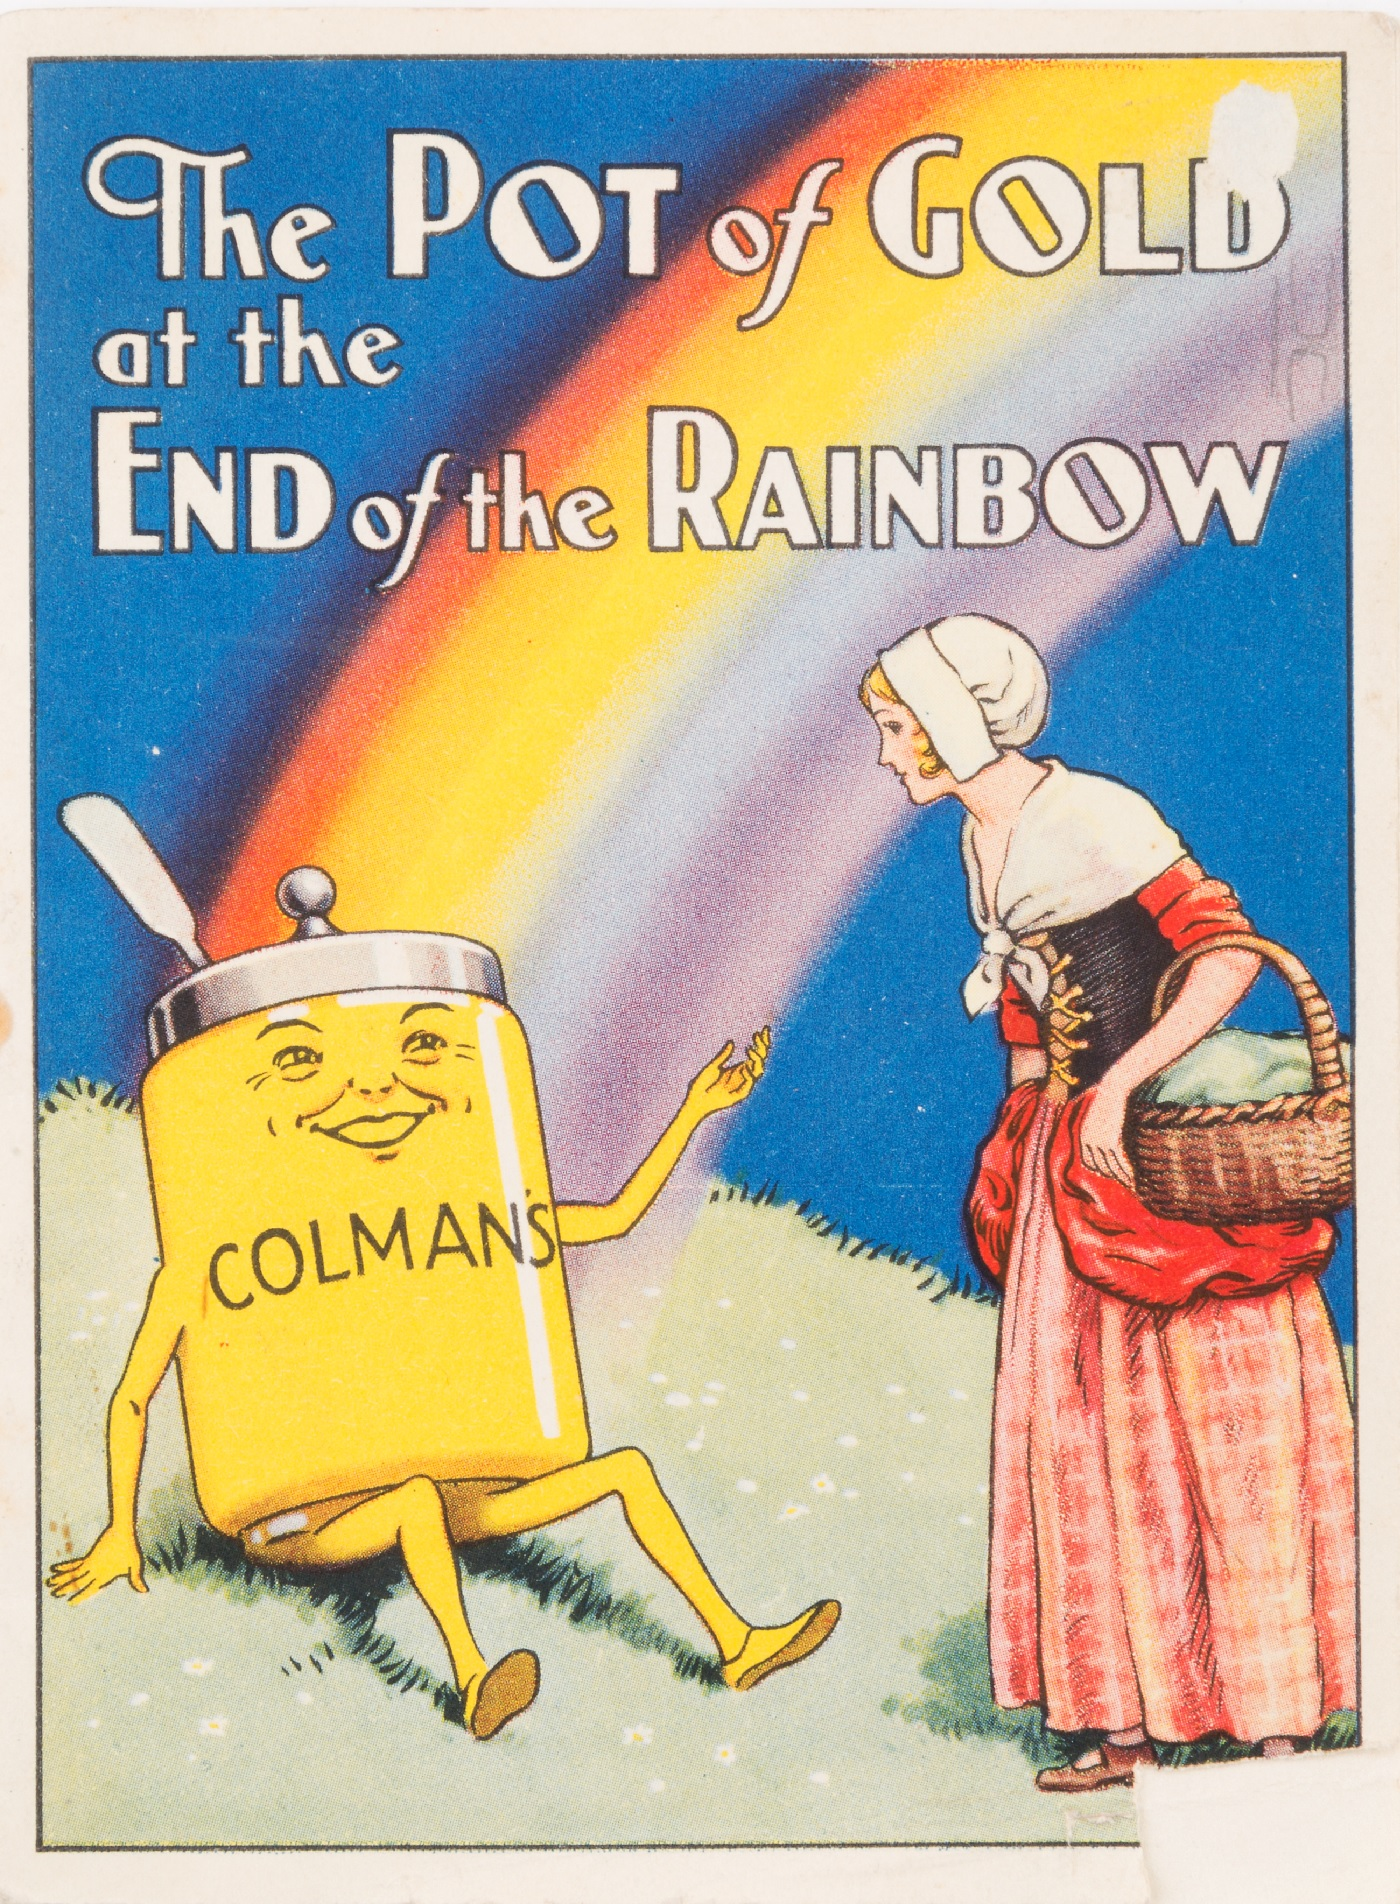 Paperback book entitled 'The Pot of Gold at the end of the Rainbow' with advertisements for Colman's produced on the back, c.1970s.